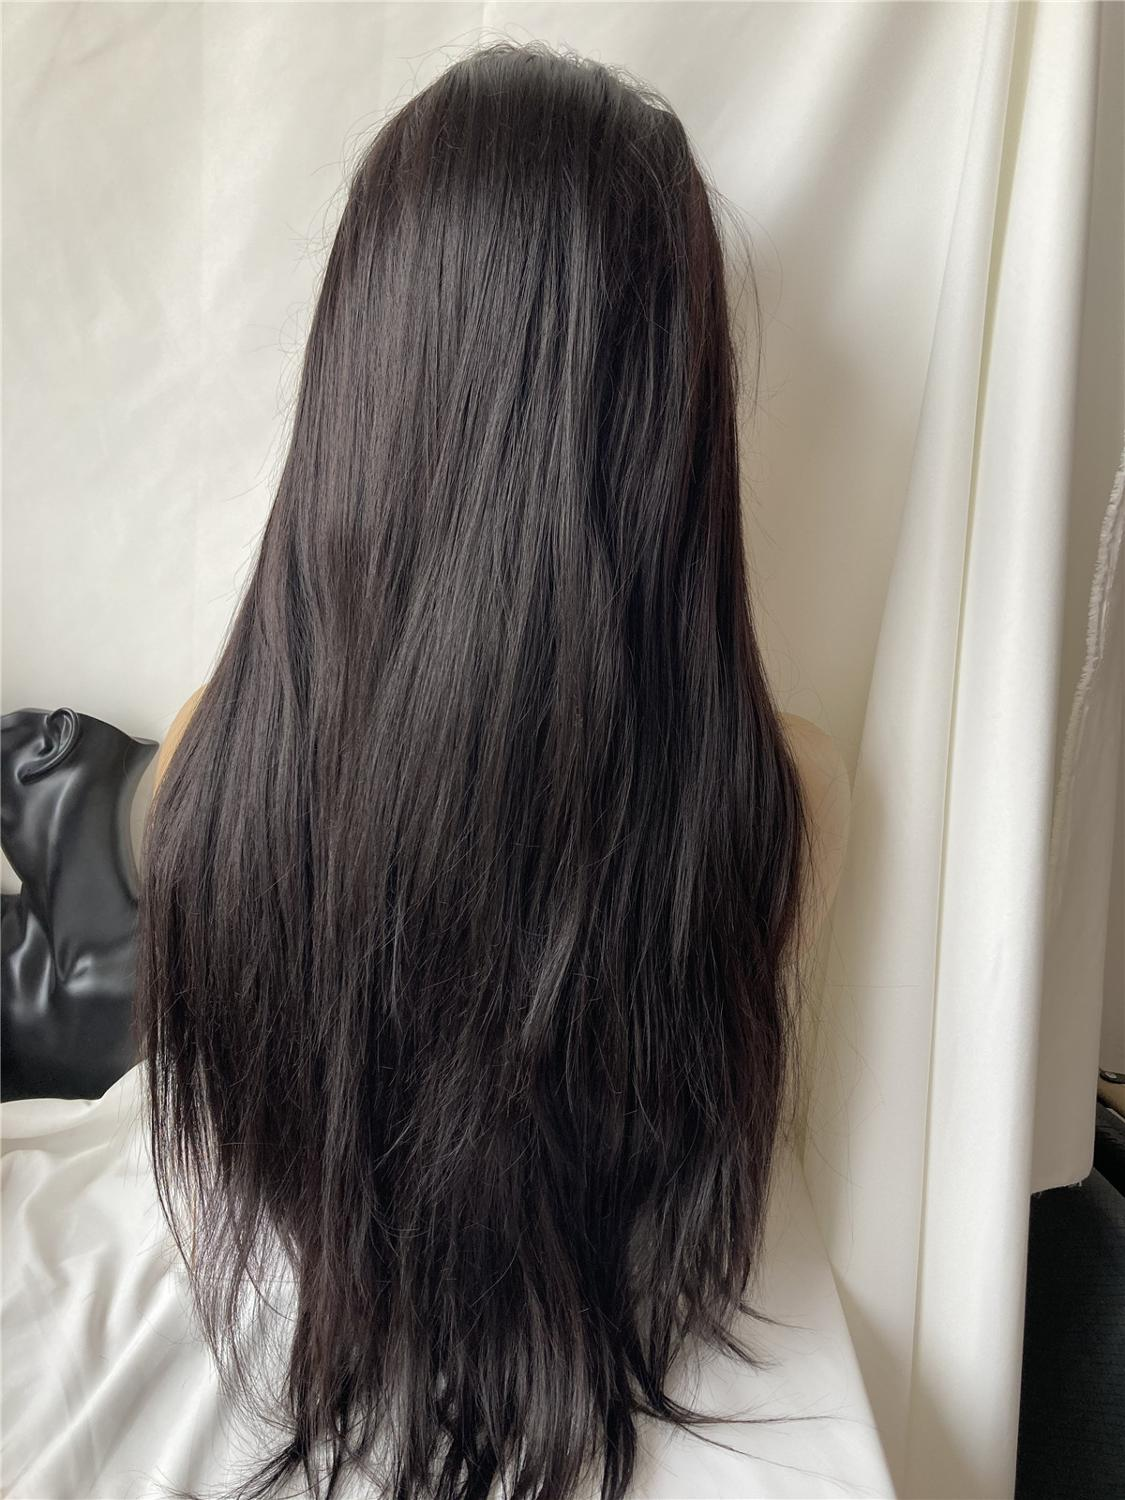 Silky Straight Glueless Synthetic Lace Front Wigs Baby Hair Heat Resistant Fiber Wig For Women